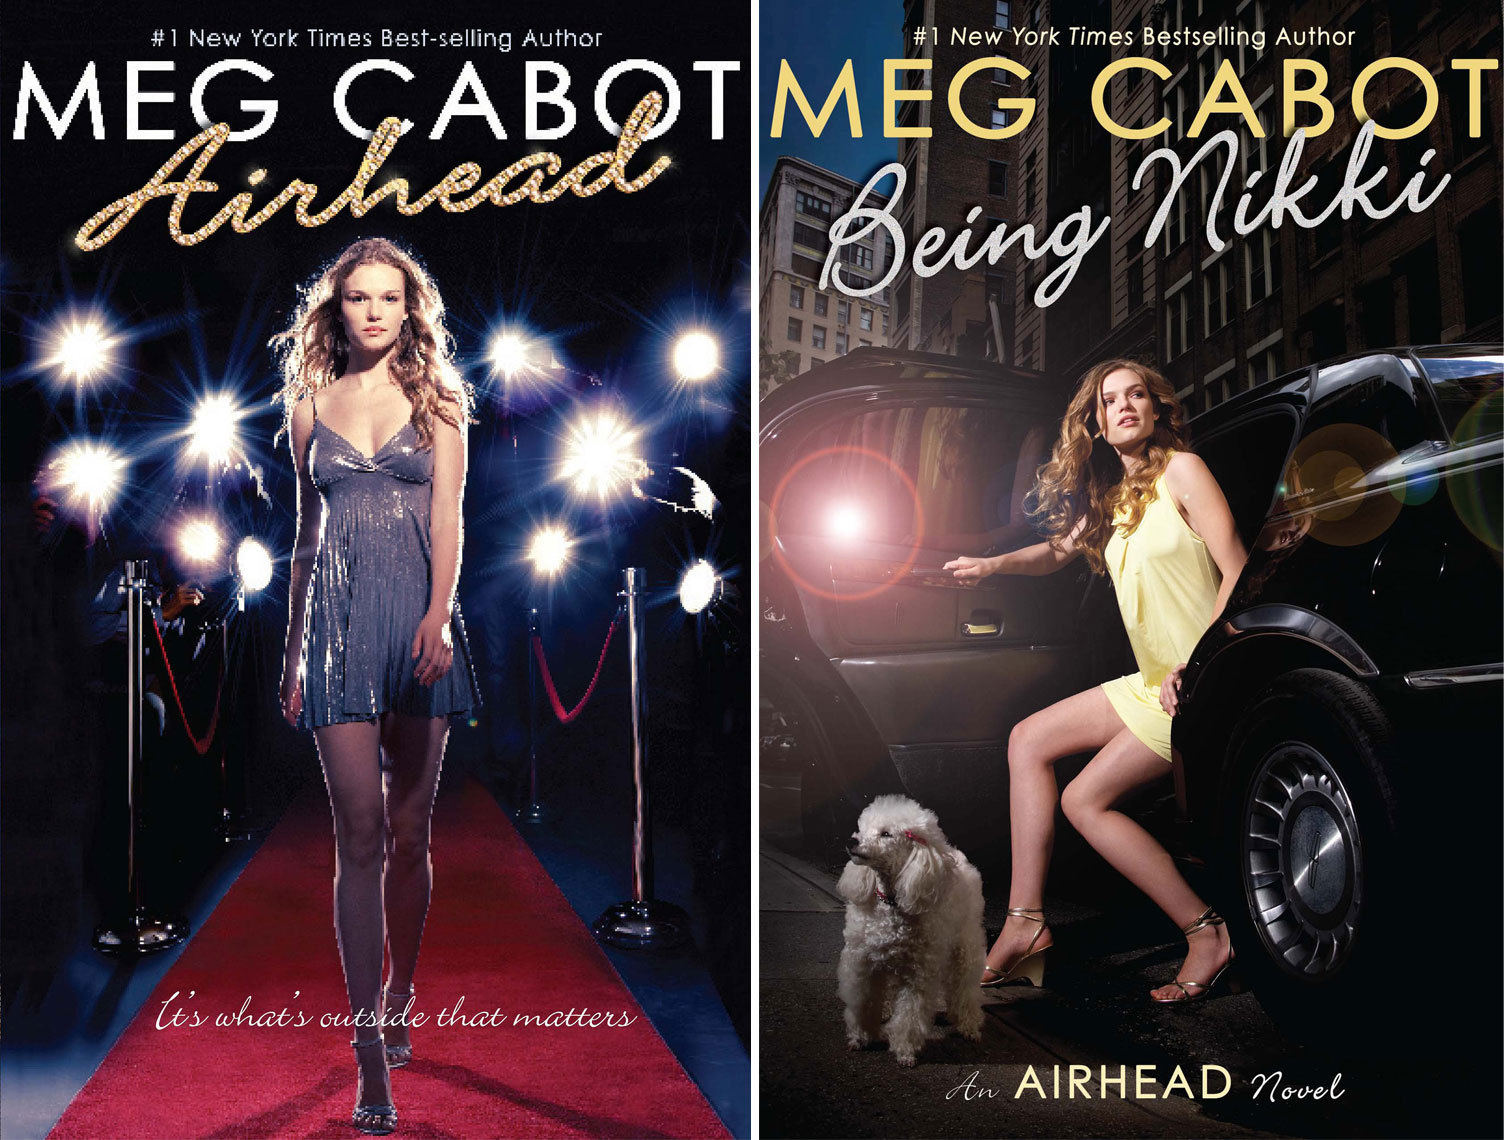 Airhead - Being Nikki - Meg Cabot | Michael Frost Photography